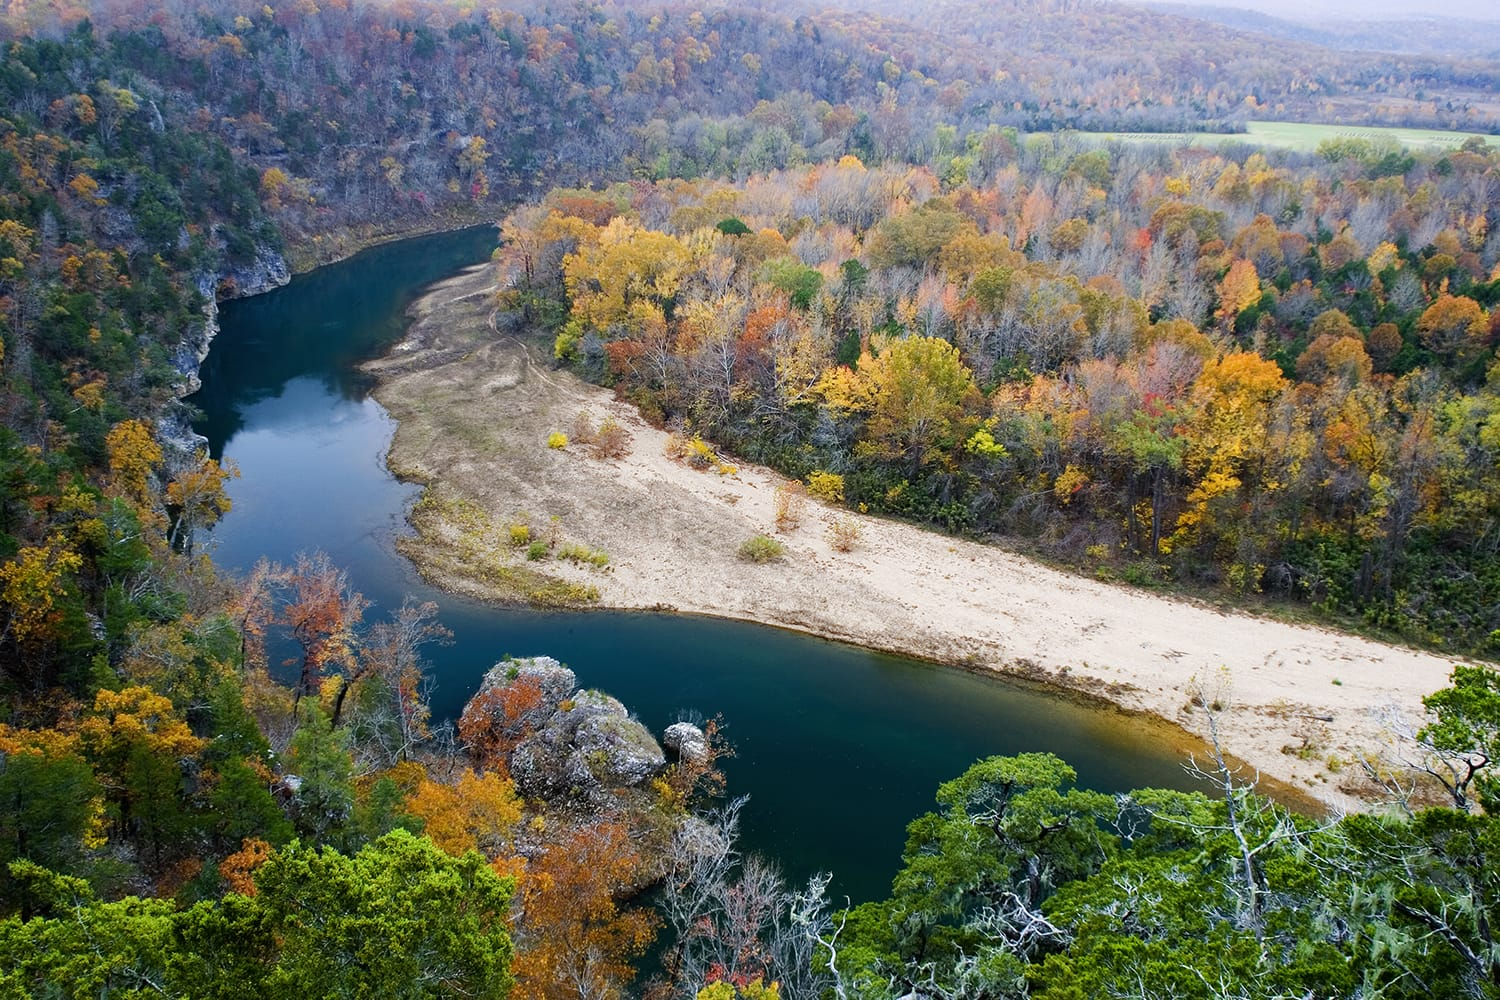 Late fall colors from atop the Tie Slide overlook, Buffalo National River, Arkansas